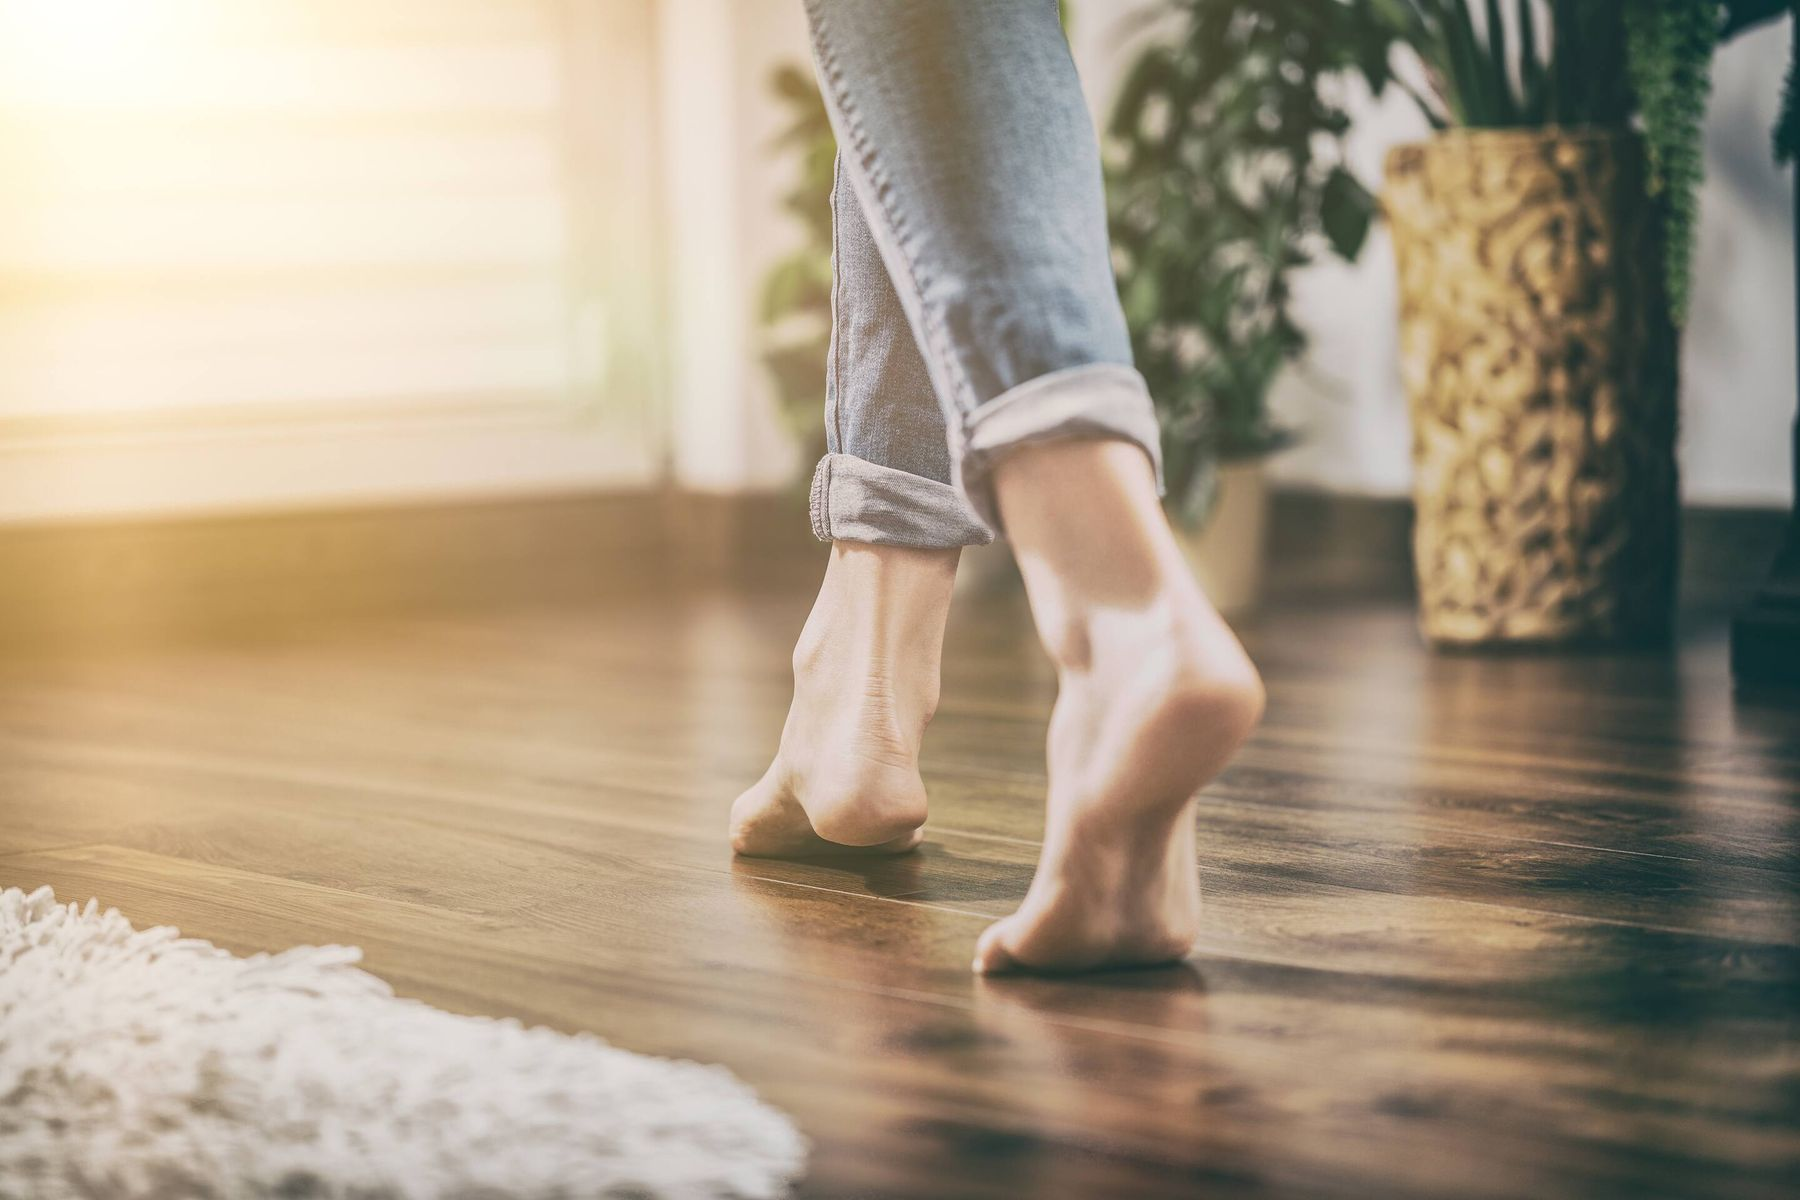 diy-wooden-floor-cleaning-hacks-you-need-to-know